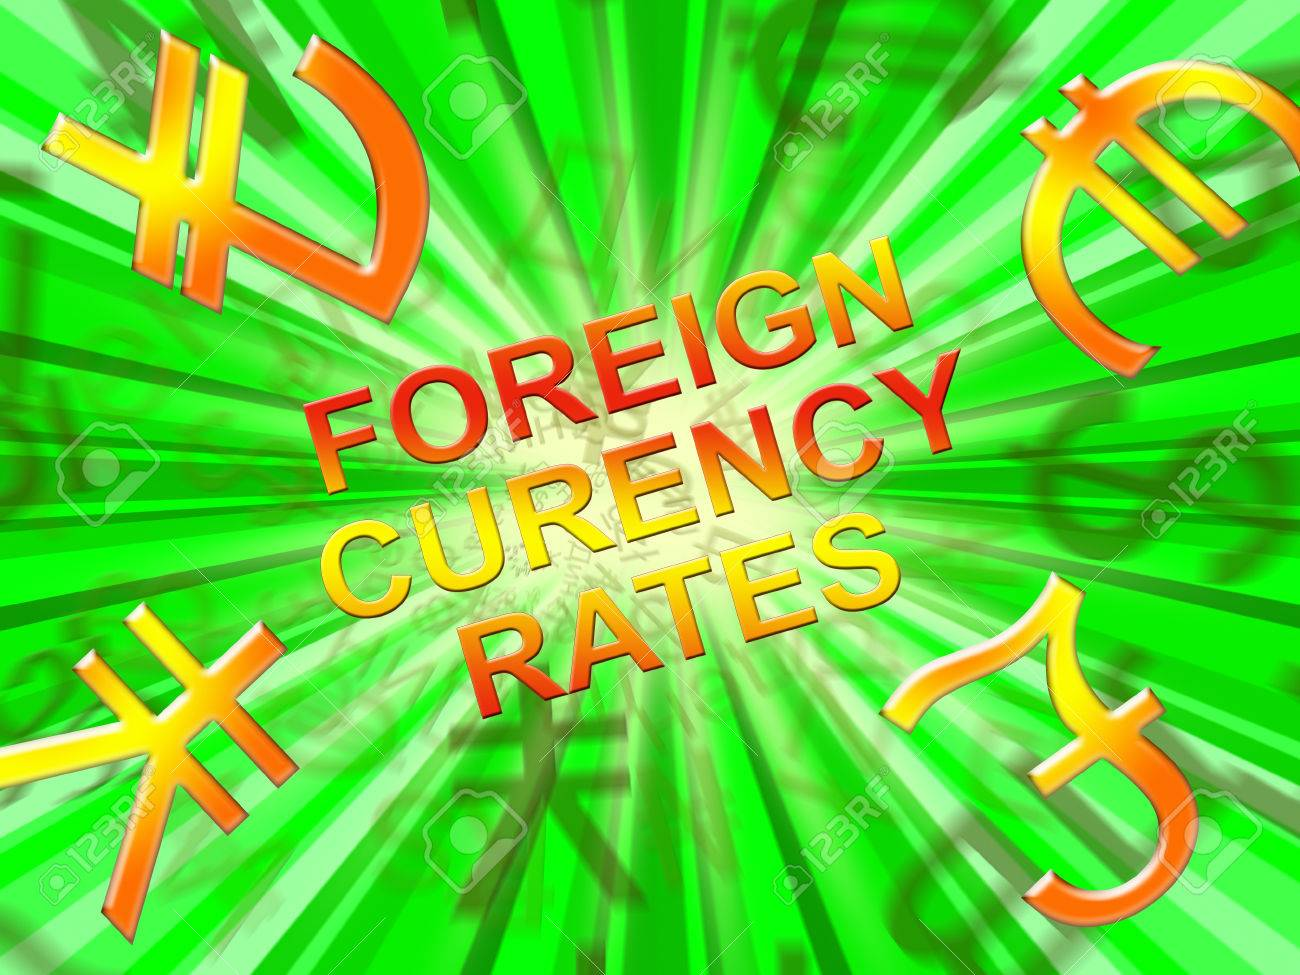 Foreign exchange rates symbols means forex 3d illustration stock foreign exchange rates symbols means forex 3d illustration stock illustration 79715625 biocorpaavc Images